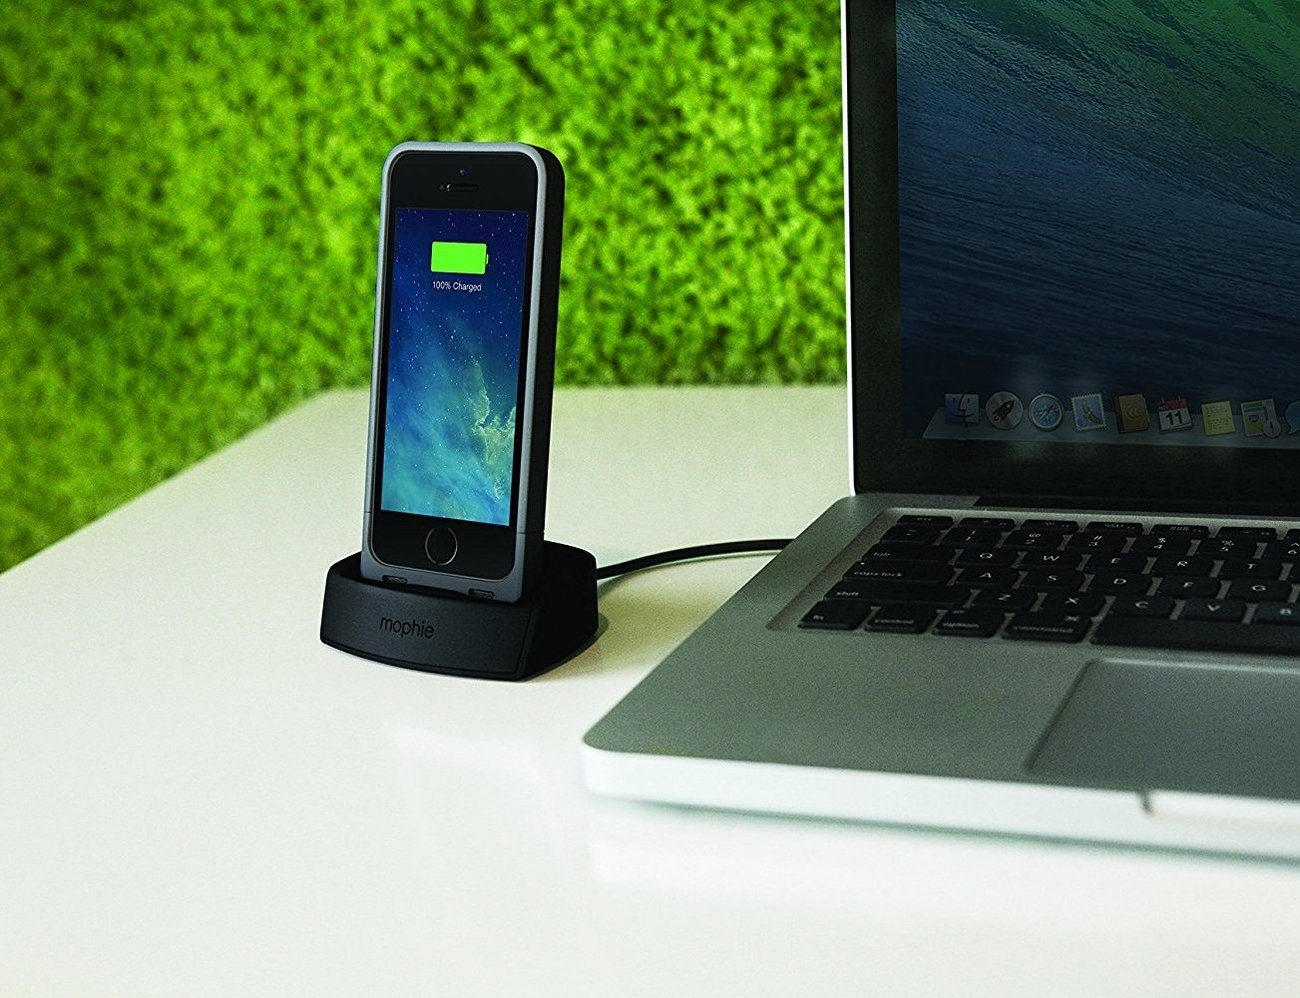 mophie Desktop Charging Dock